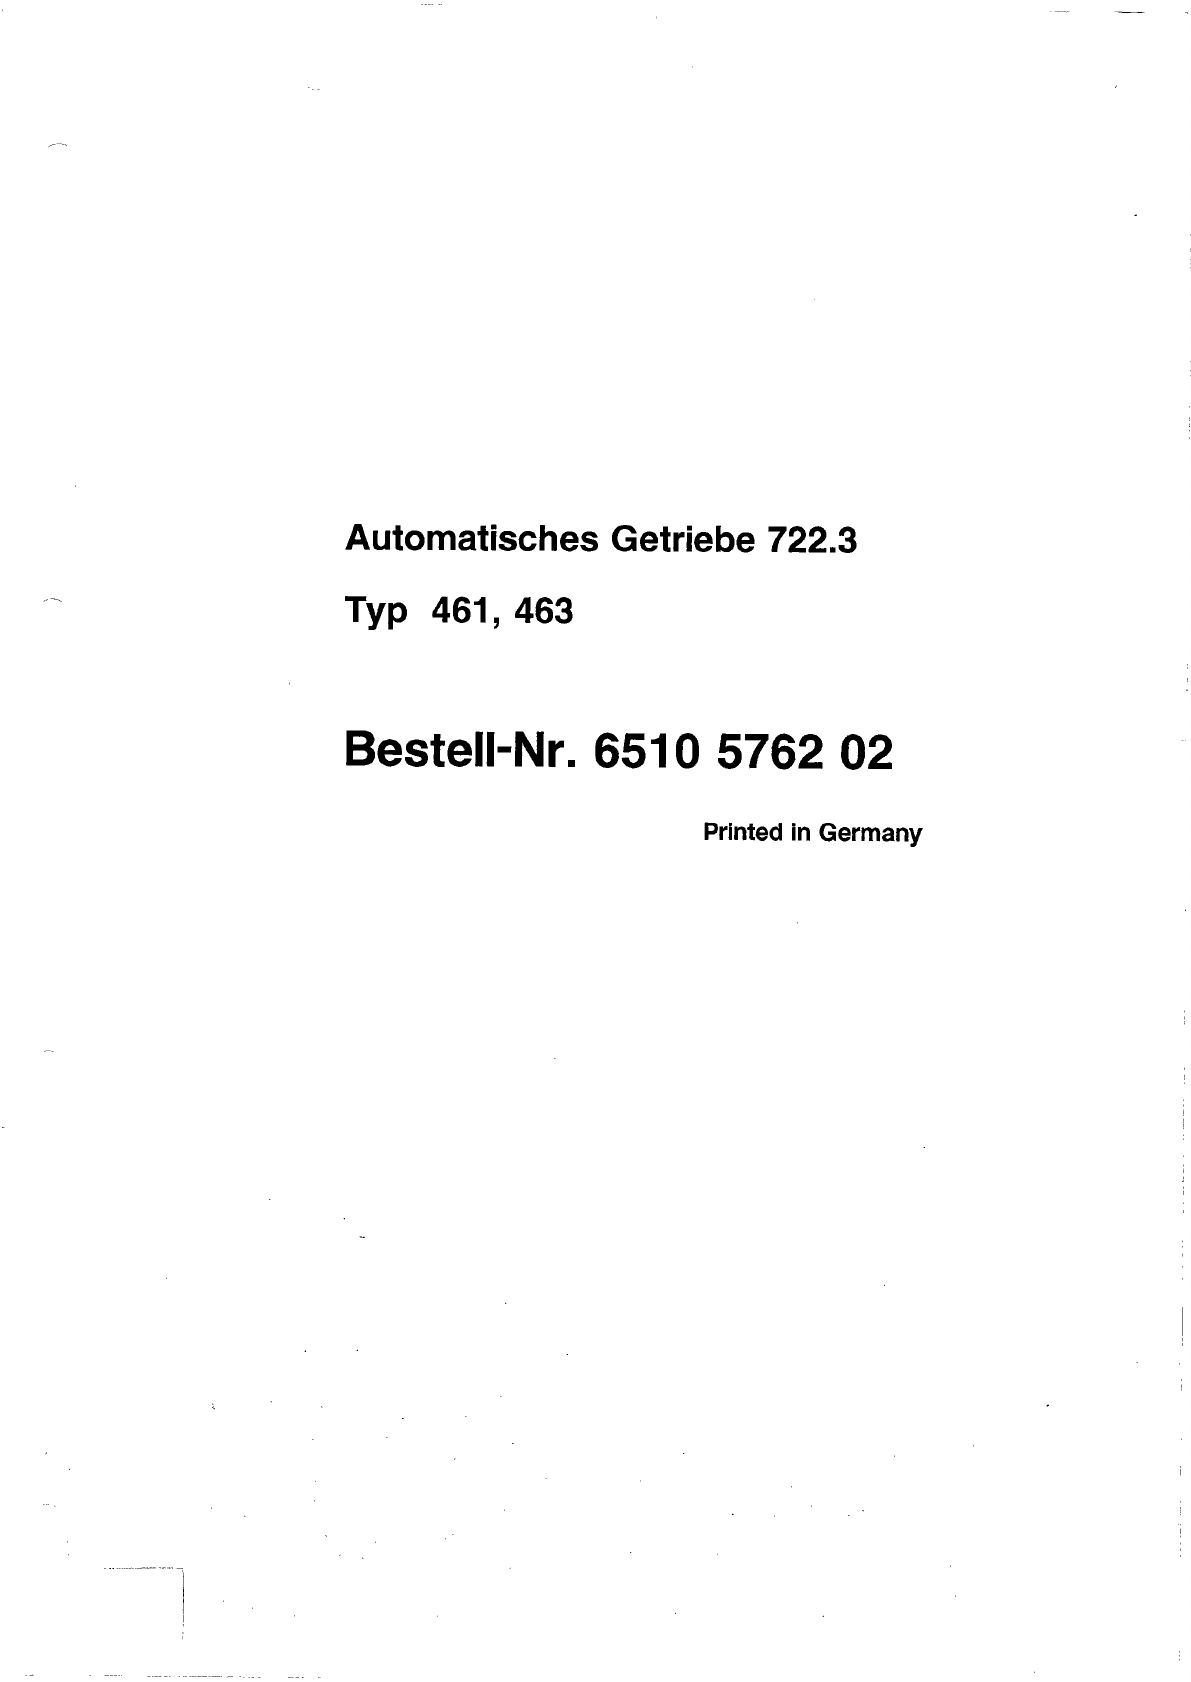 Mercedes G 230 Repair Manual Electrical Wiring Diagram Of 1992 Suzuki Vs800 Intruder For Us And Canada Part 2 Array Workshop Automatic Transmission Pdf Rh Manuals